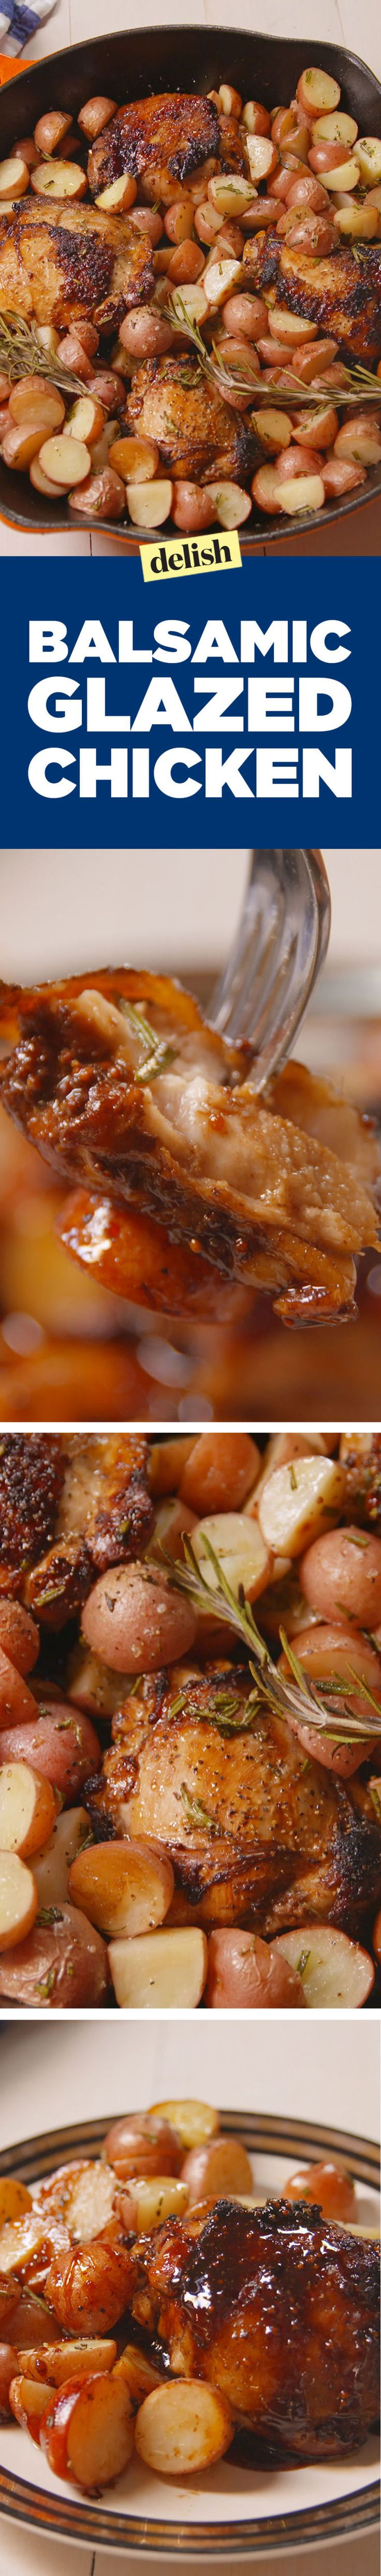 Balsamic Glazed Chicken - Delish.com